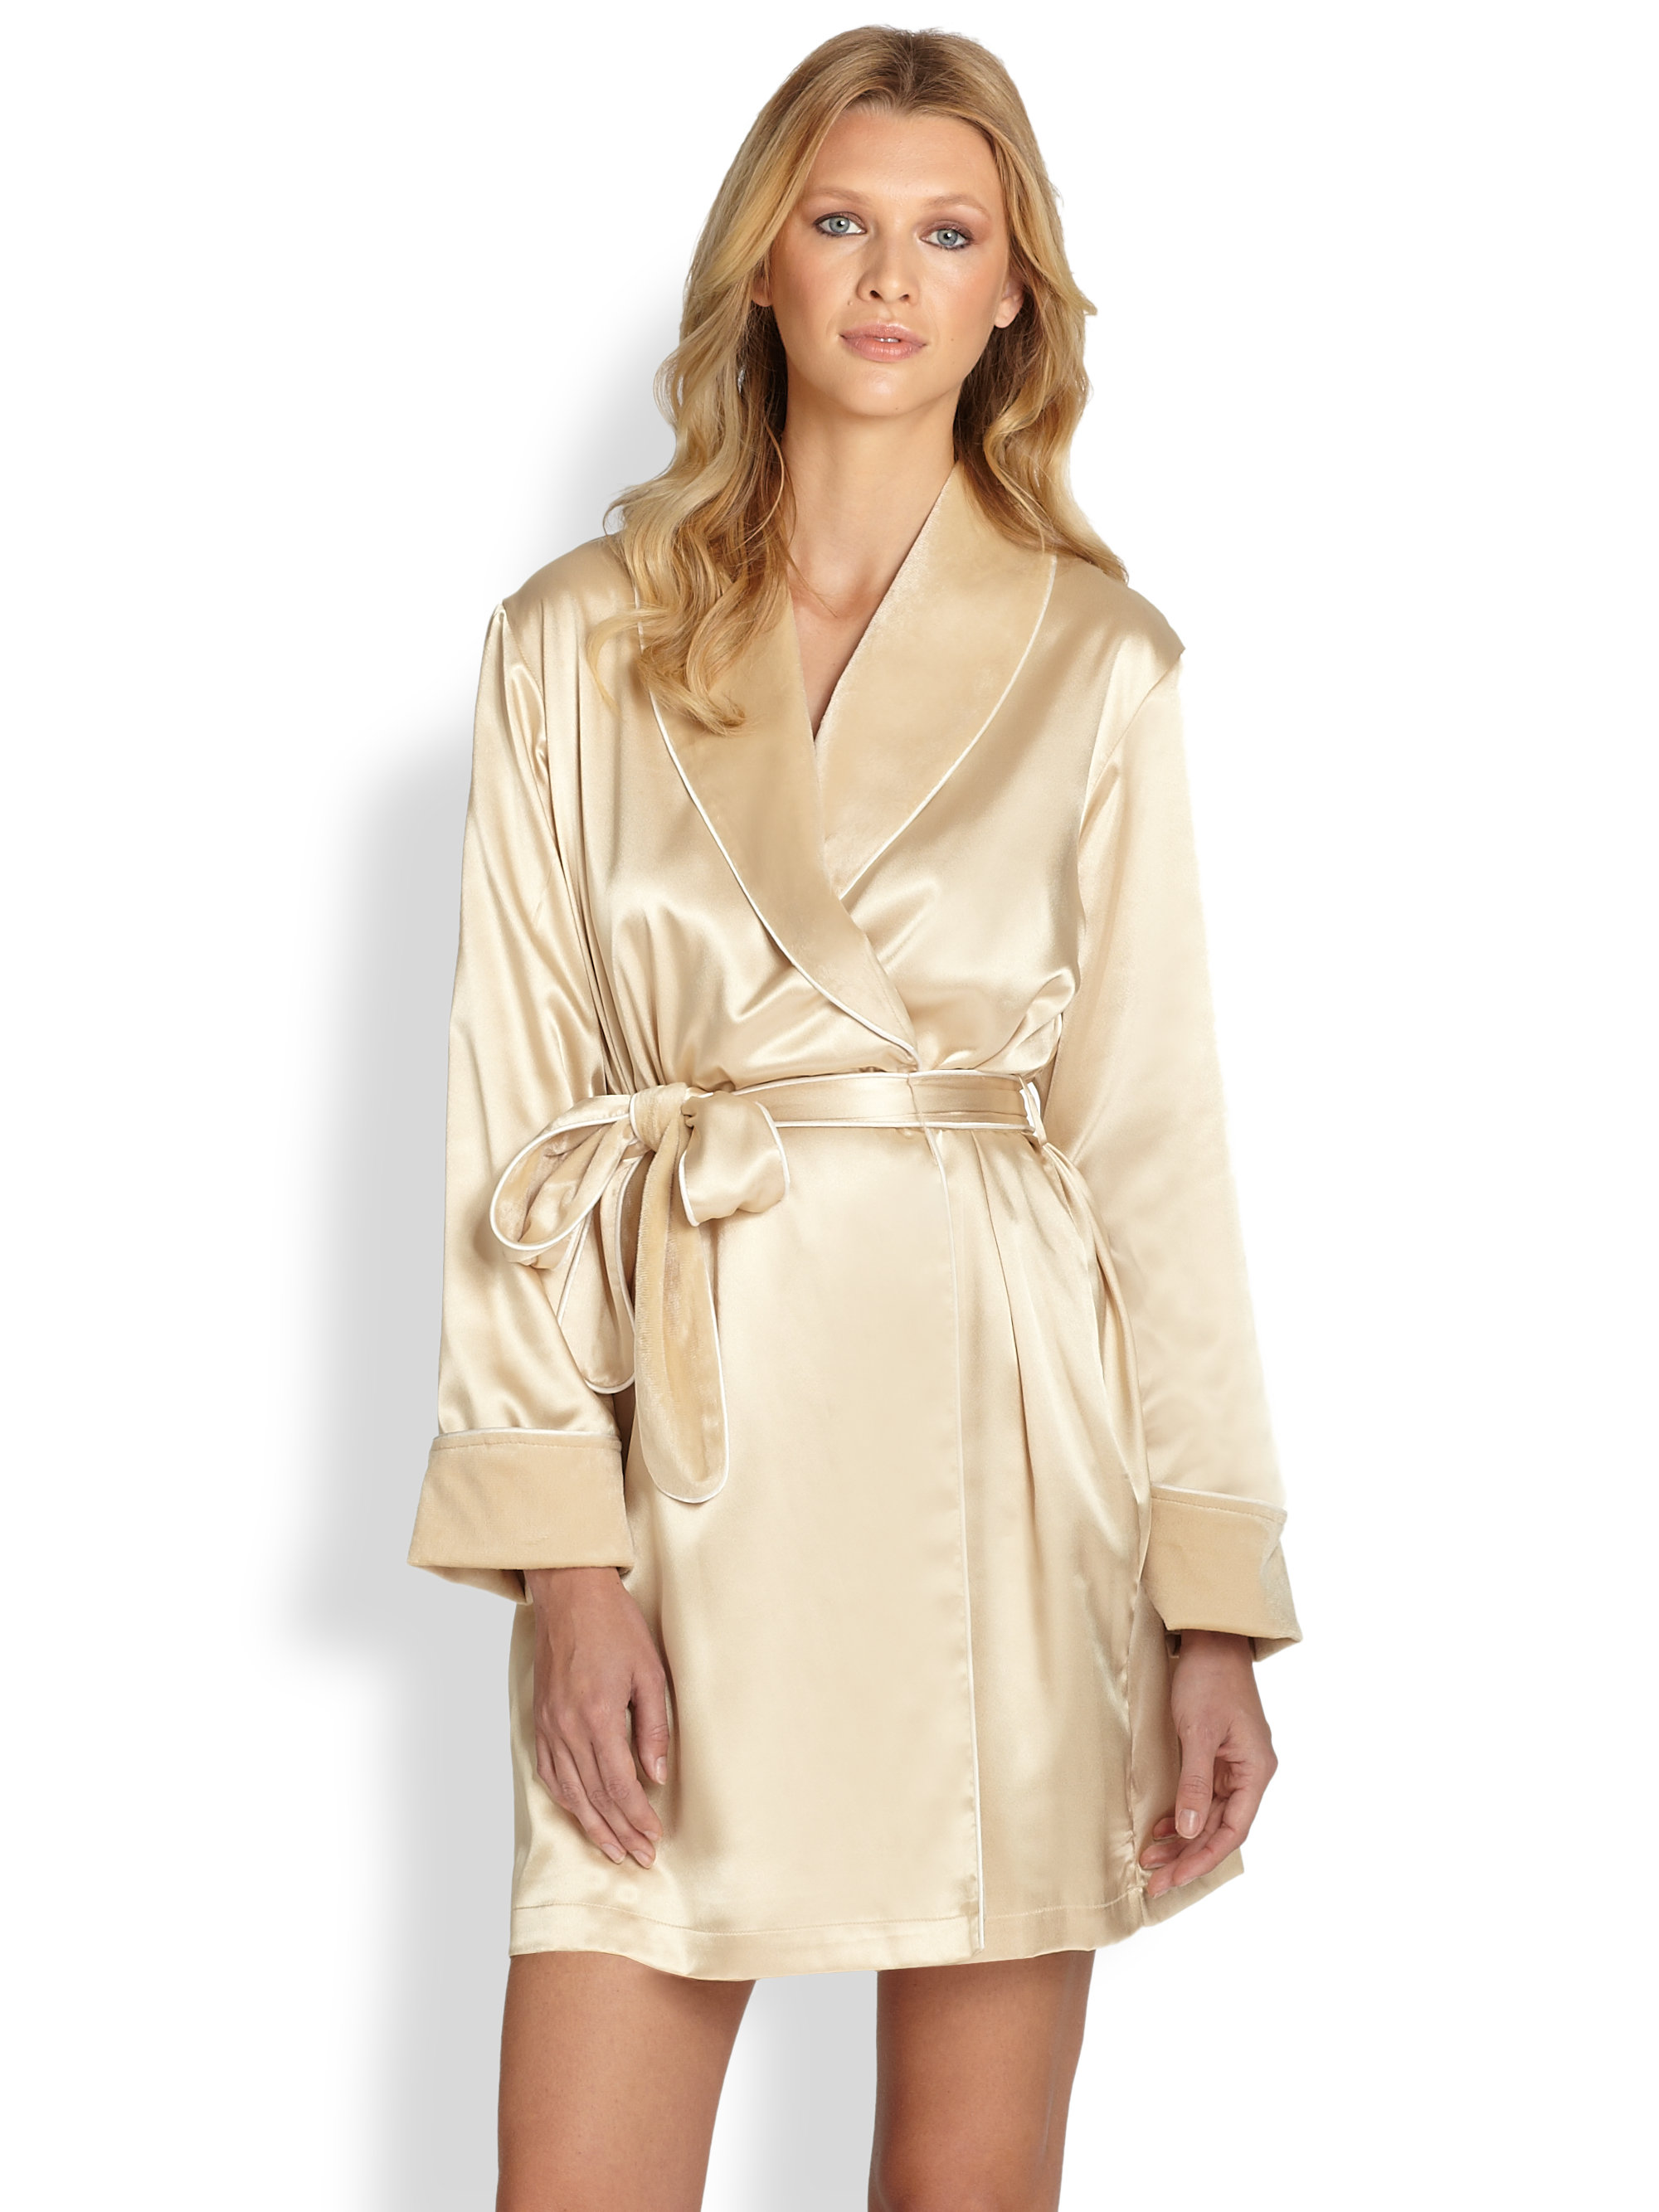 Lyst - Oscar de la Renta Faux Fur Lined Satin Robe in Metallic aa68986ec